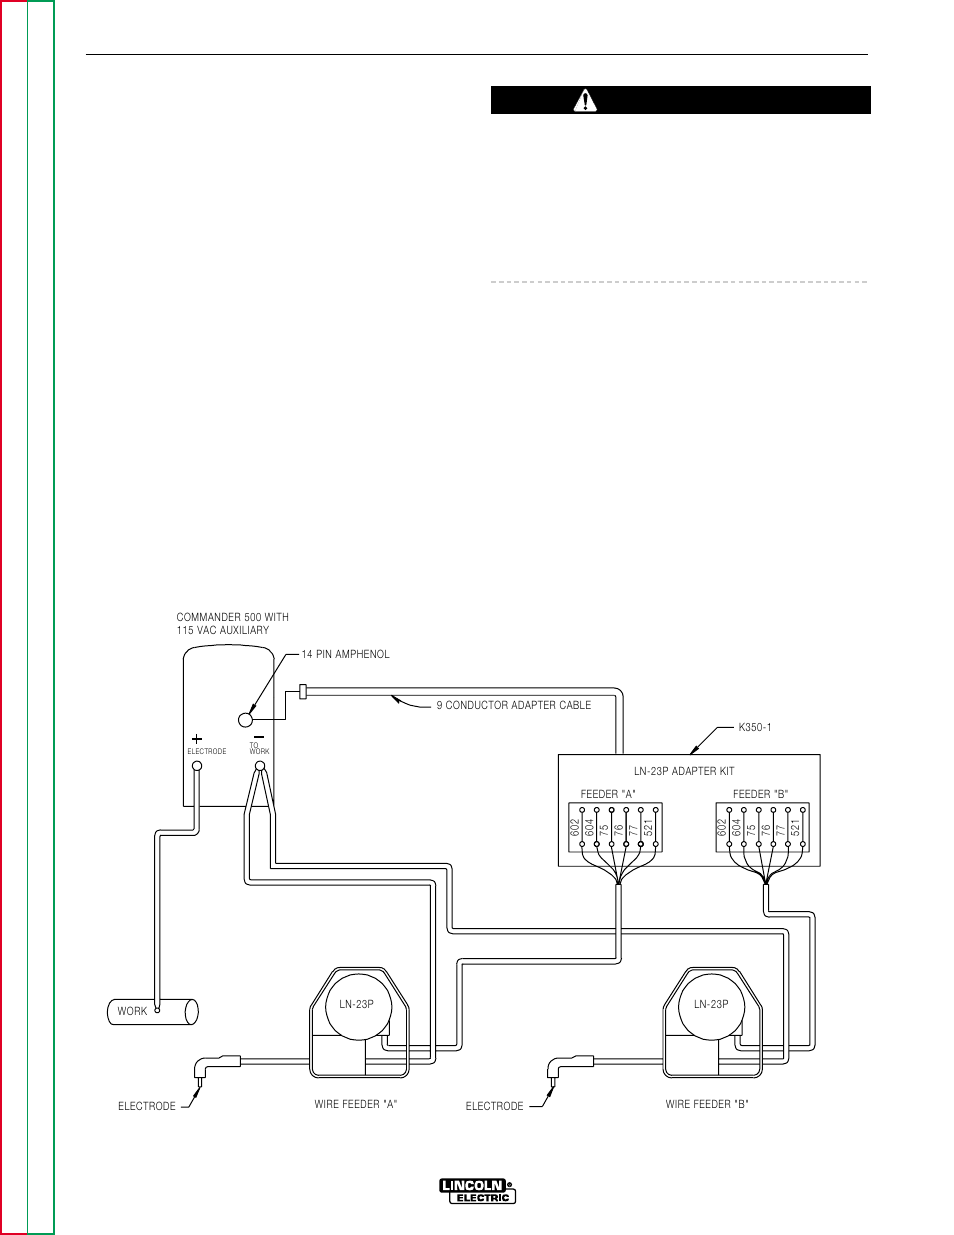 For Lincoln Commander 500 Welder Wiring Diagrams Electrical Vantage 400 Diagram Accessories Caution Electric Svm153 A User